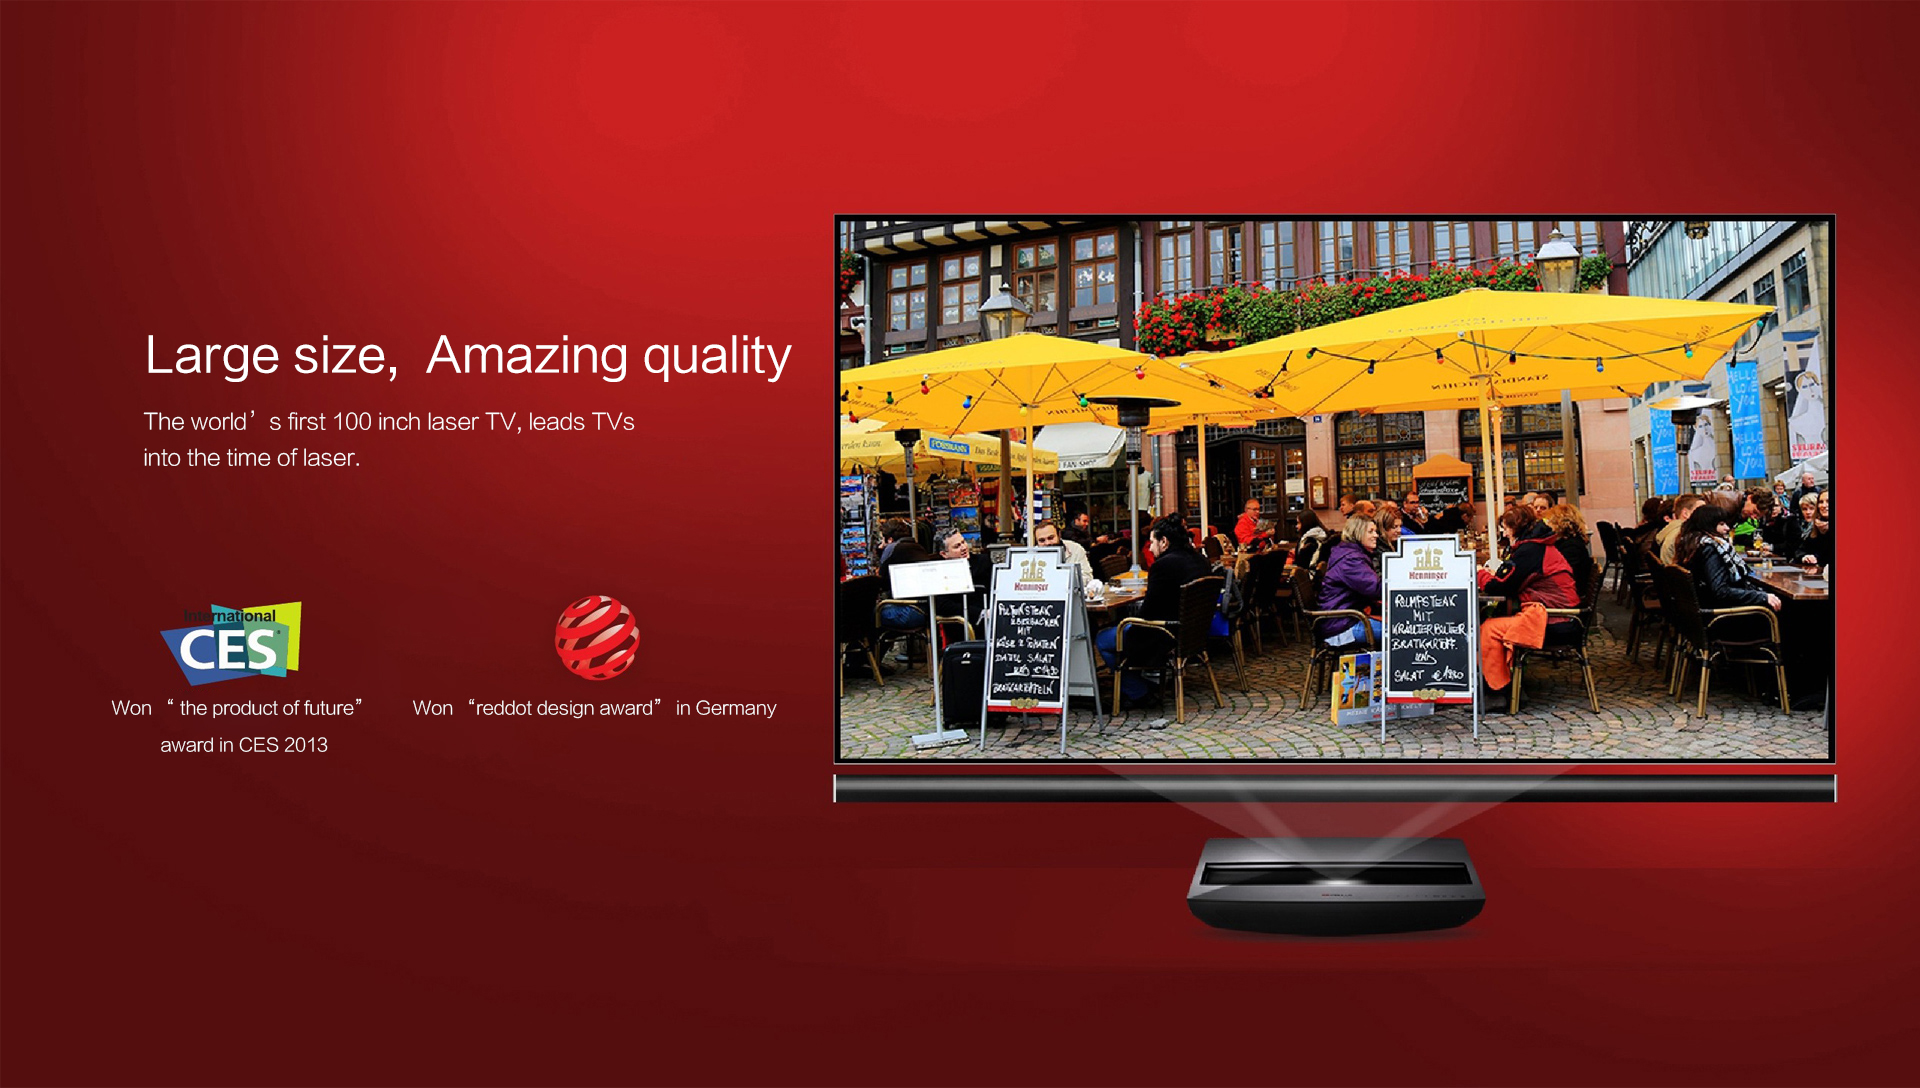 Appotronics Laser TV and LG Hecto TV